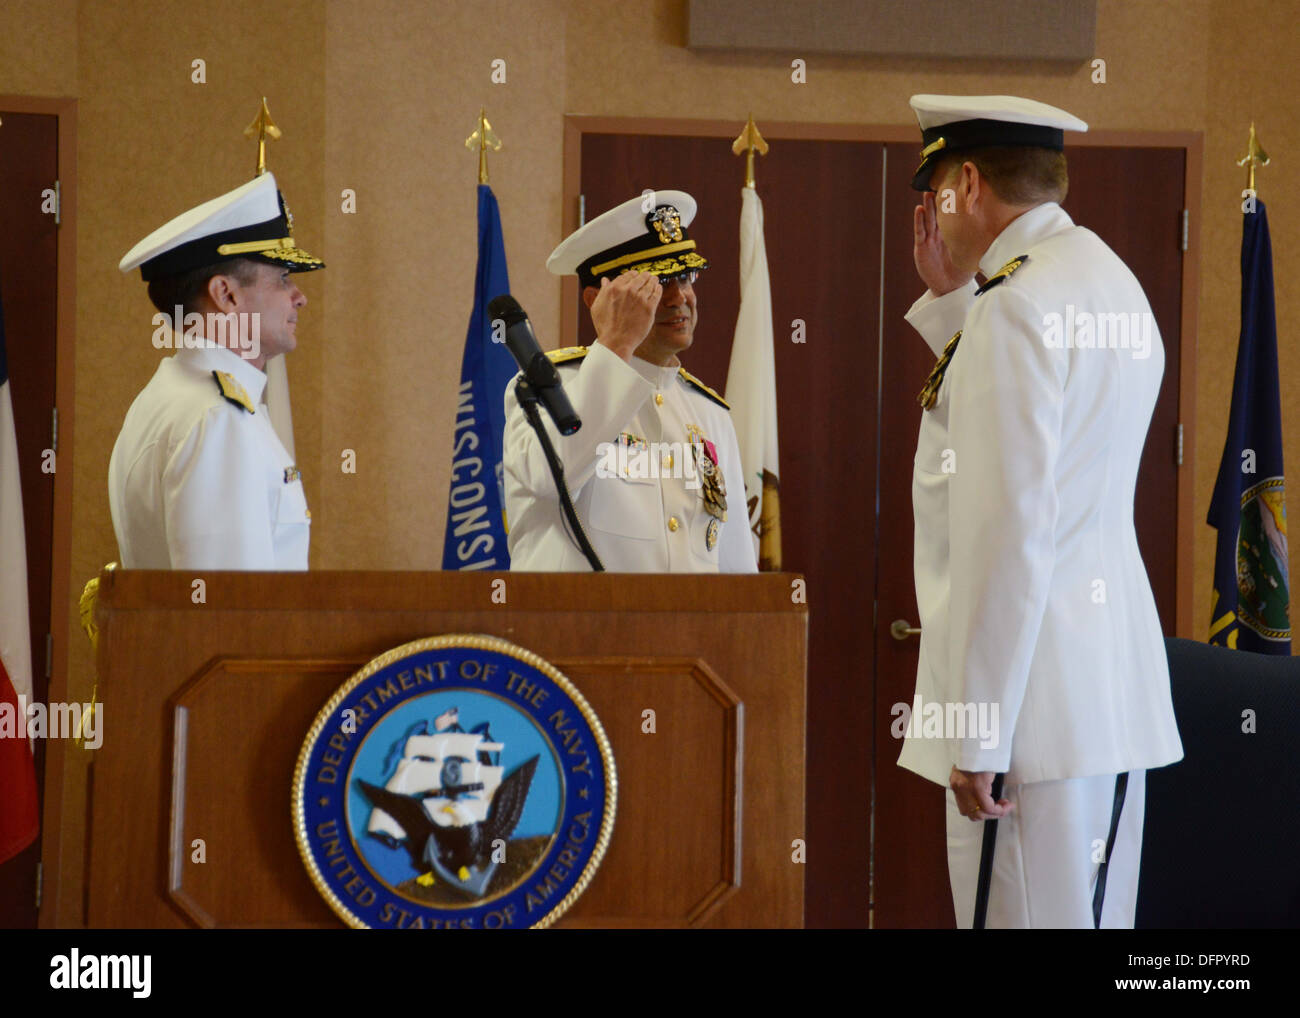 Rear Adm. Vic Beck, center, is relieved by Capt. Kent Davis as the Vice Chief of Information during his retirement ceremony in the Sail Loft at the Washington Navy Yard. - Stock Image